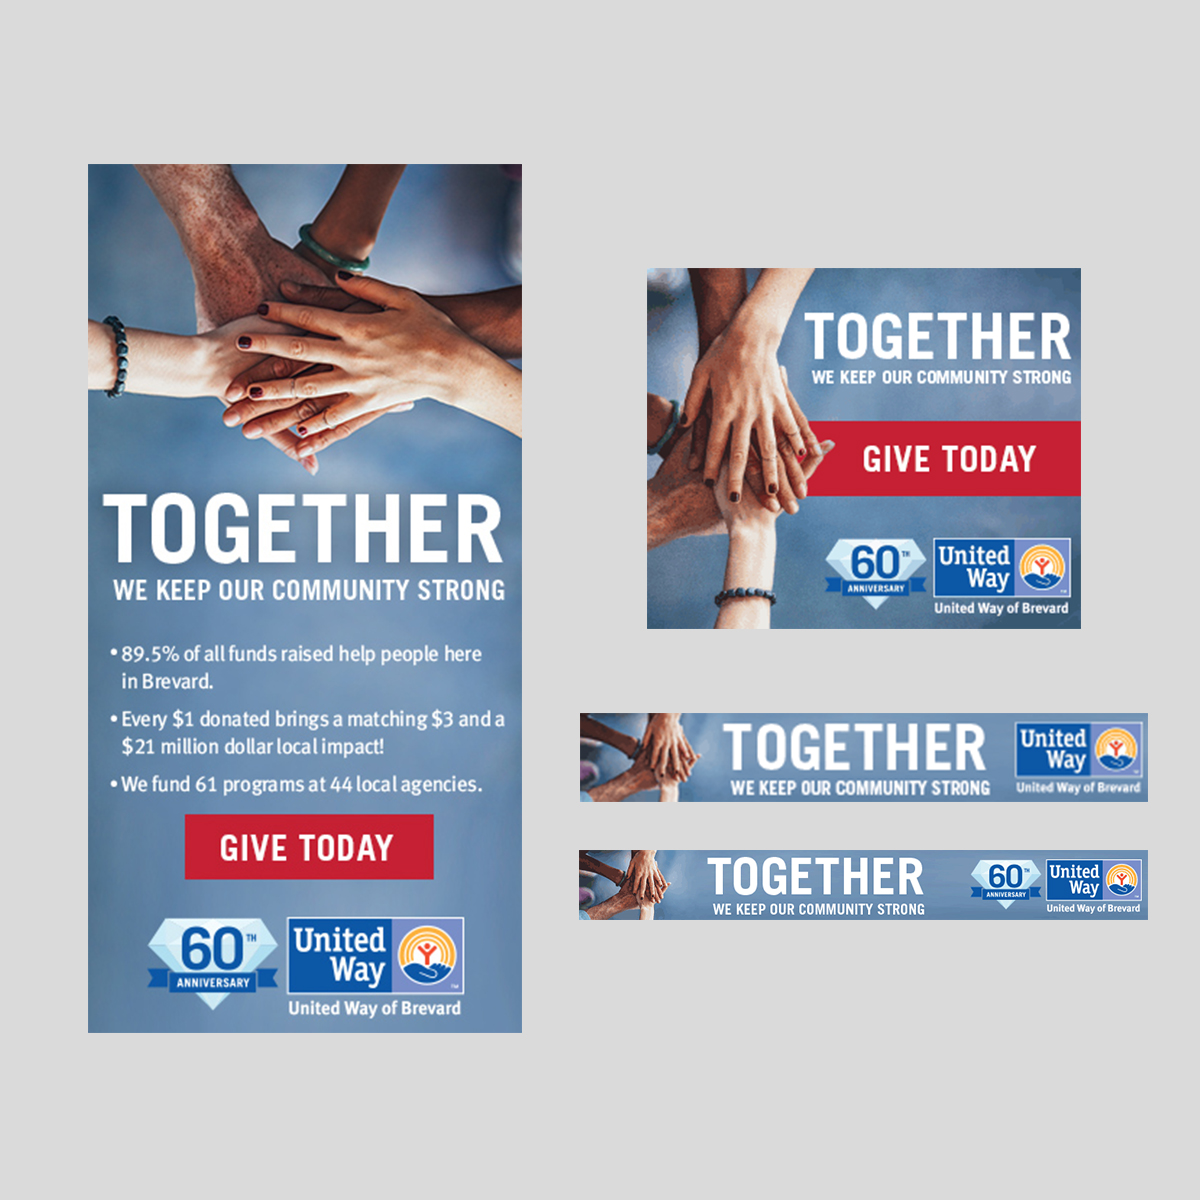 United way together campaign google ads